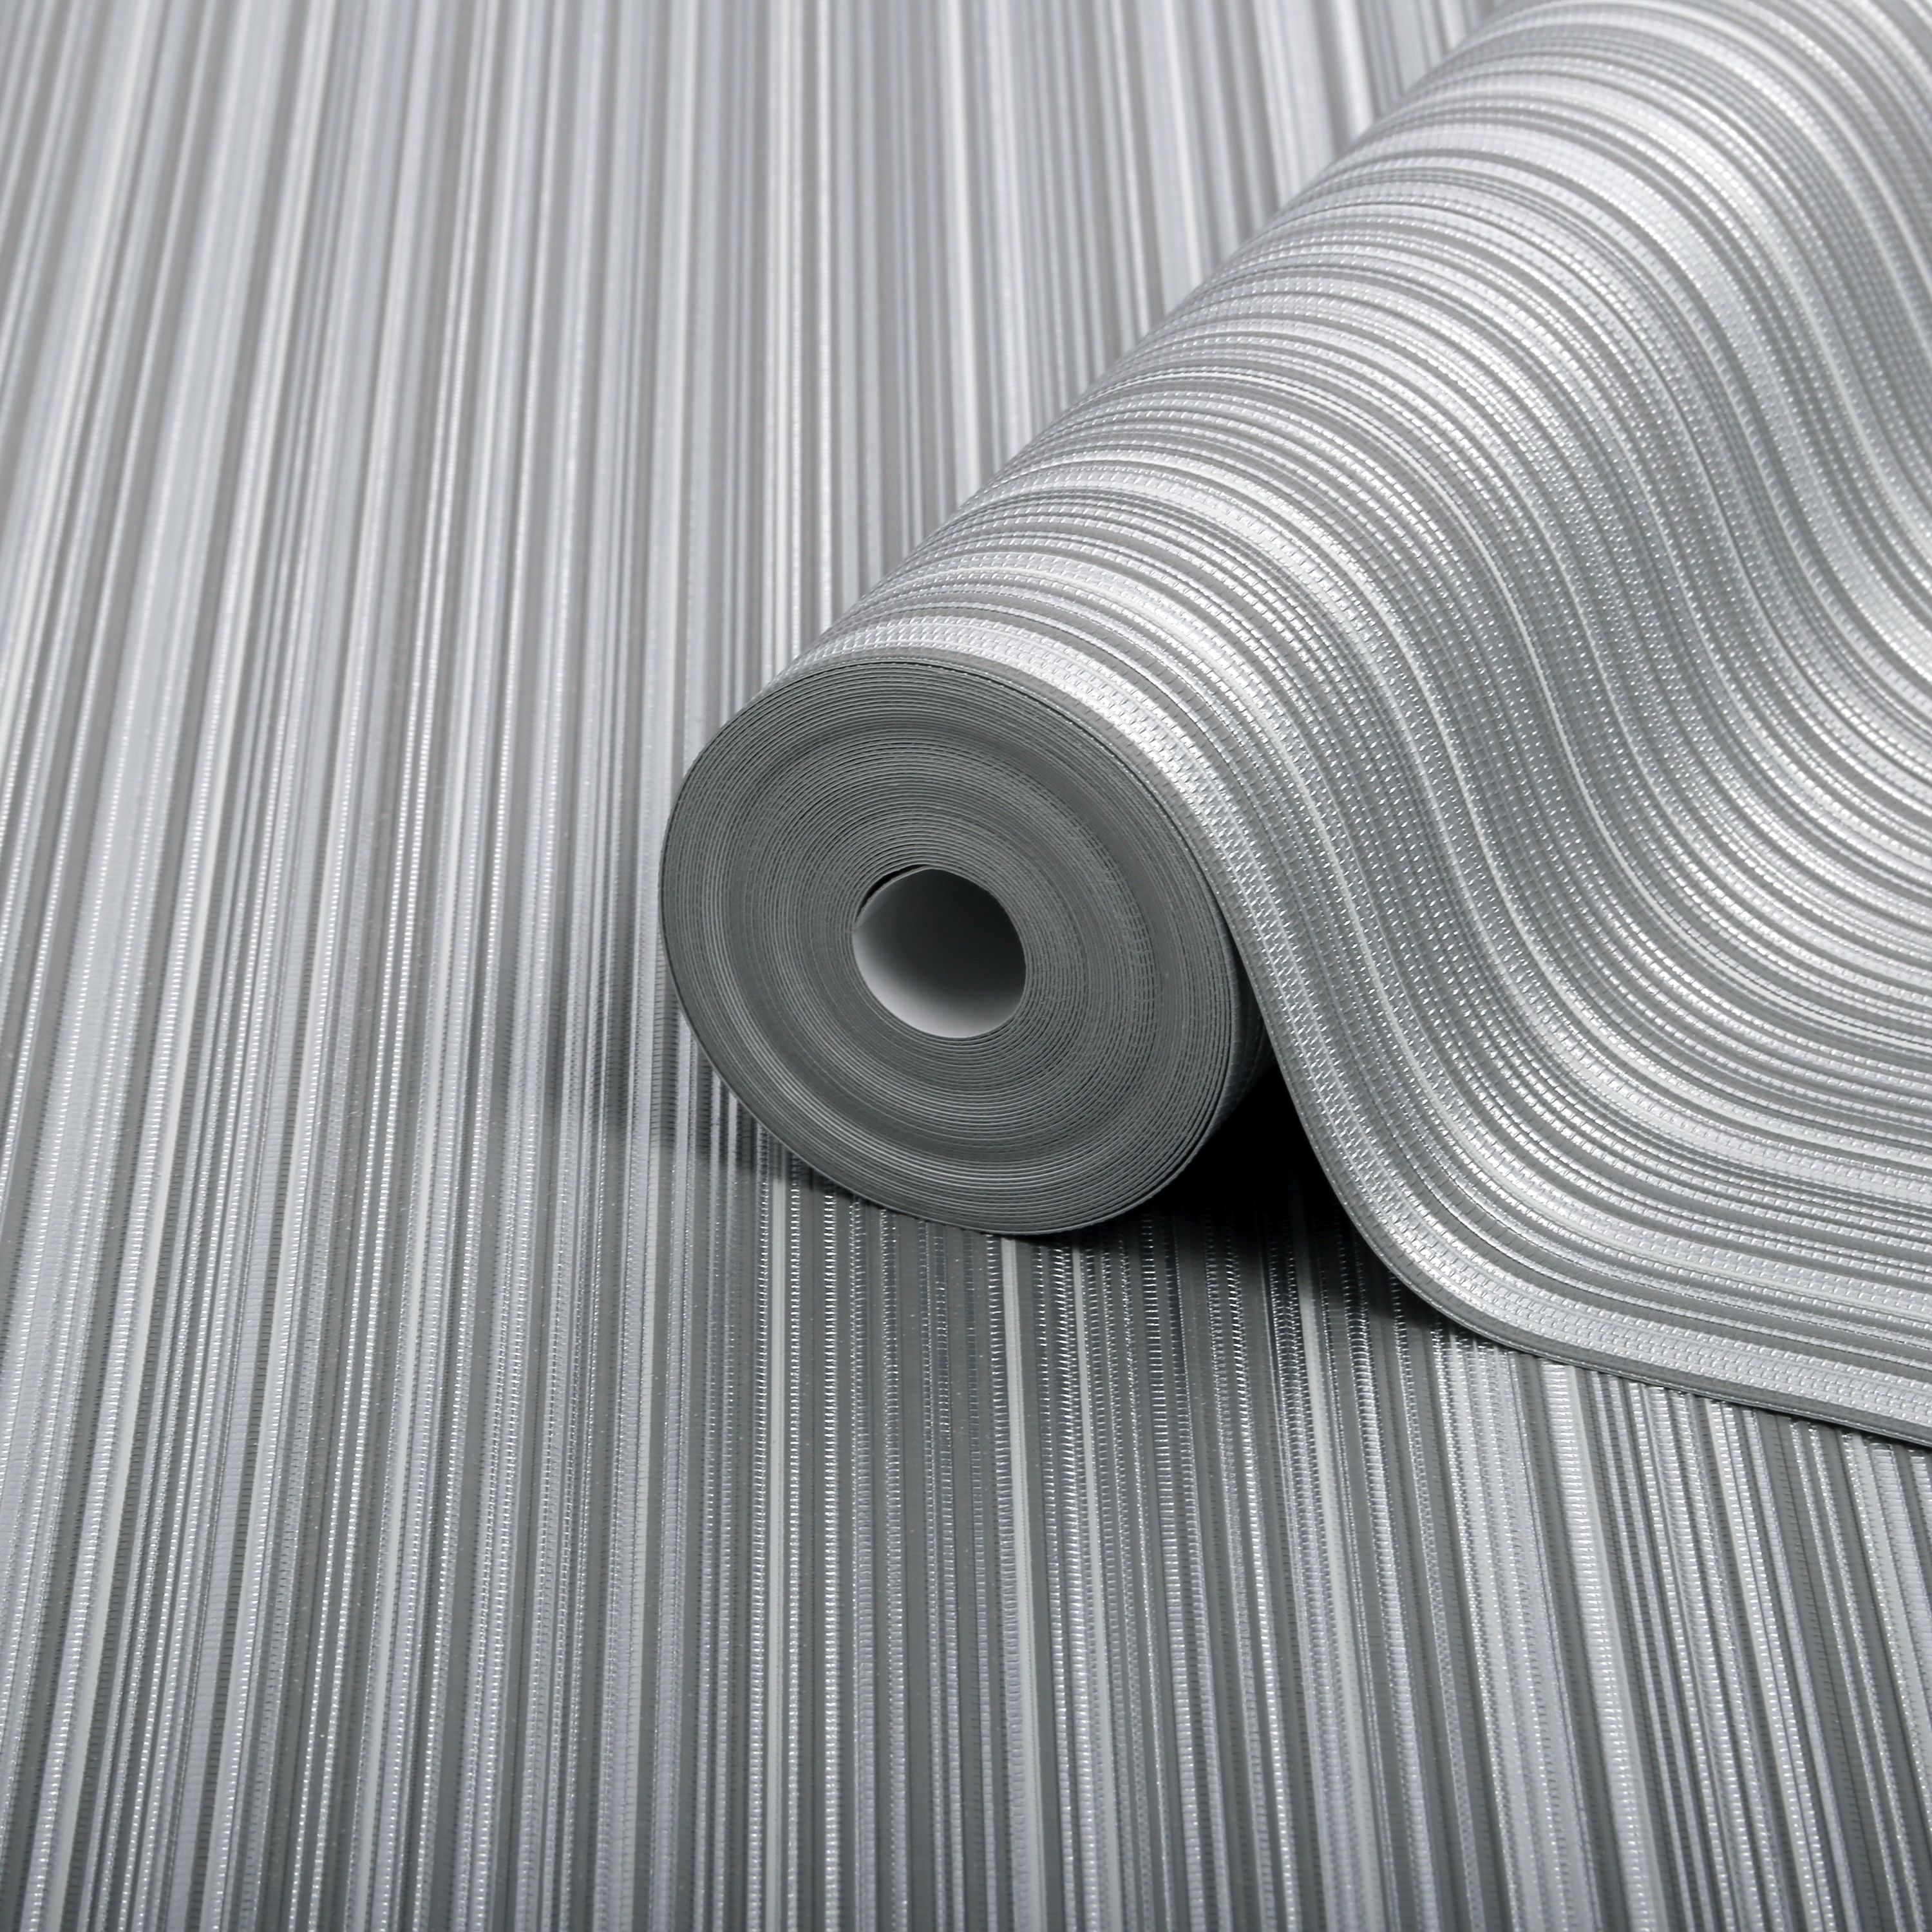 Boutique Palma Ice Striped Metallic Wallpaper B Q For All Your Home And Garden Supplies And Advice On All The Diy Wallpaper Metallic Wallpaper B Q Wallpaper